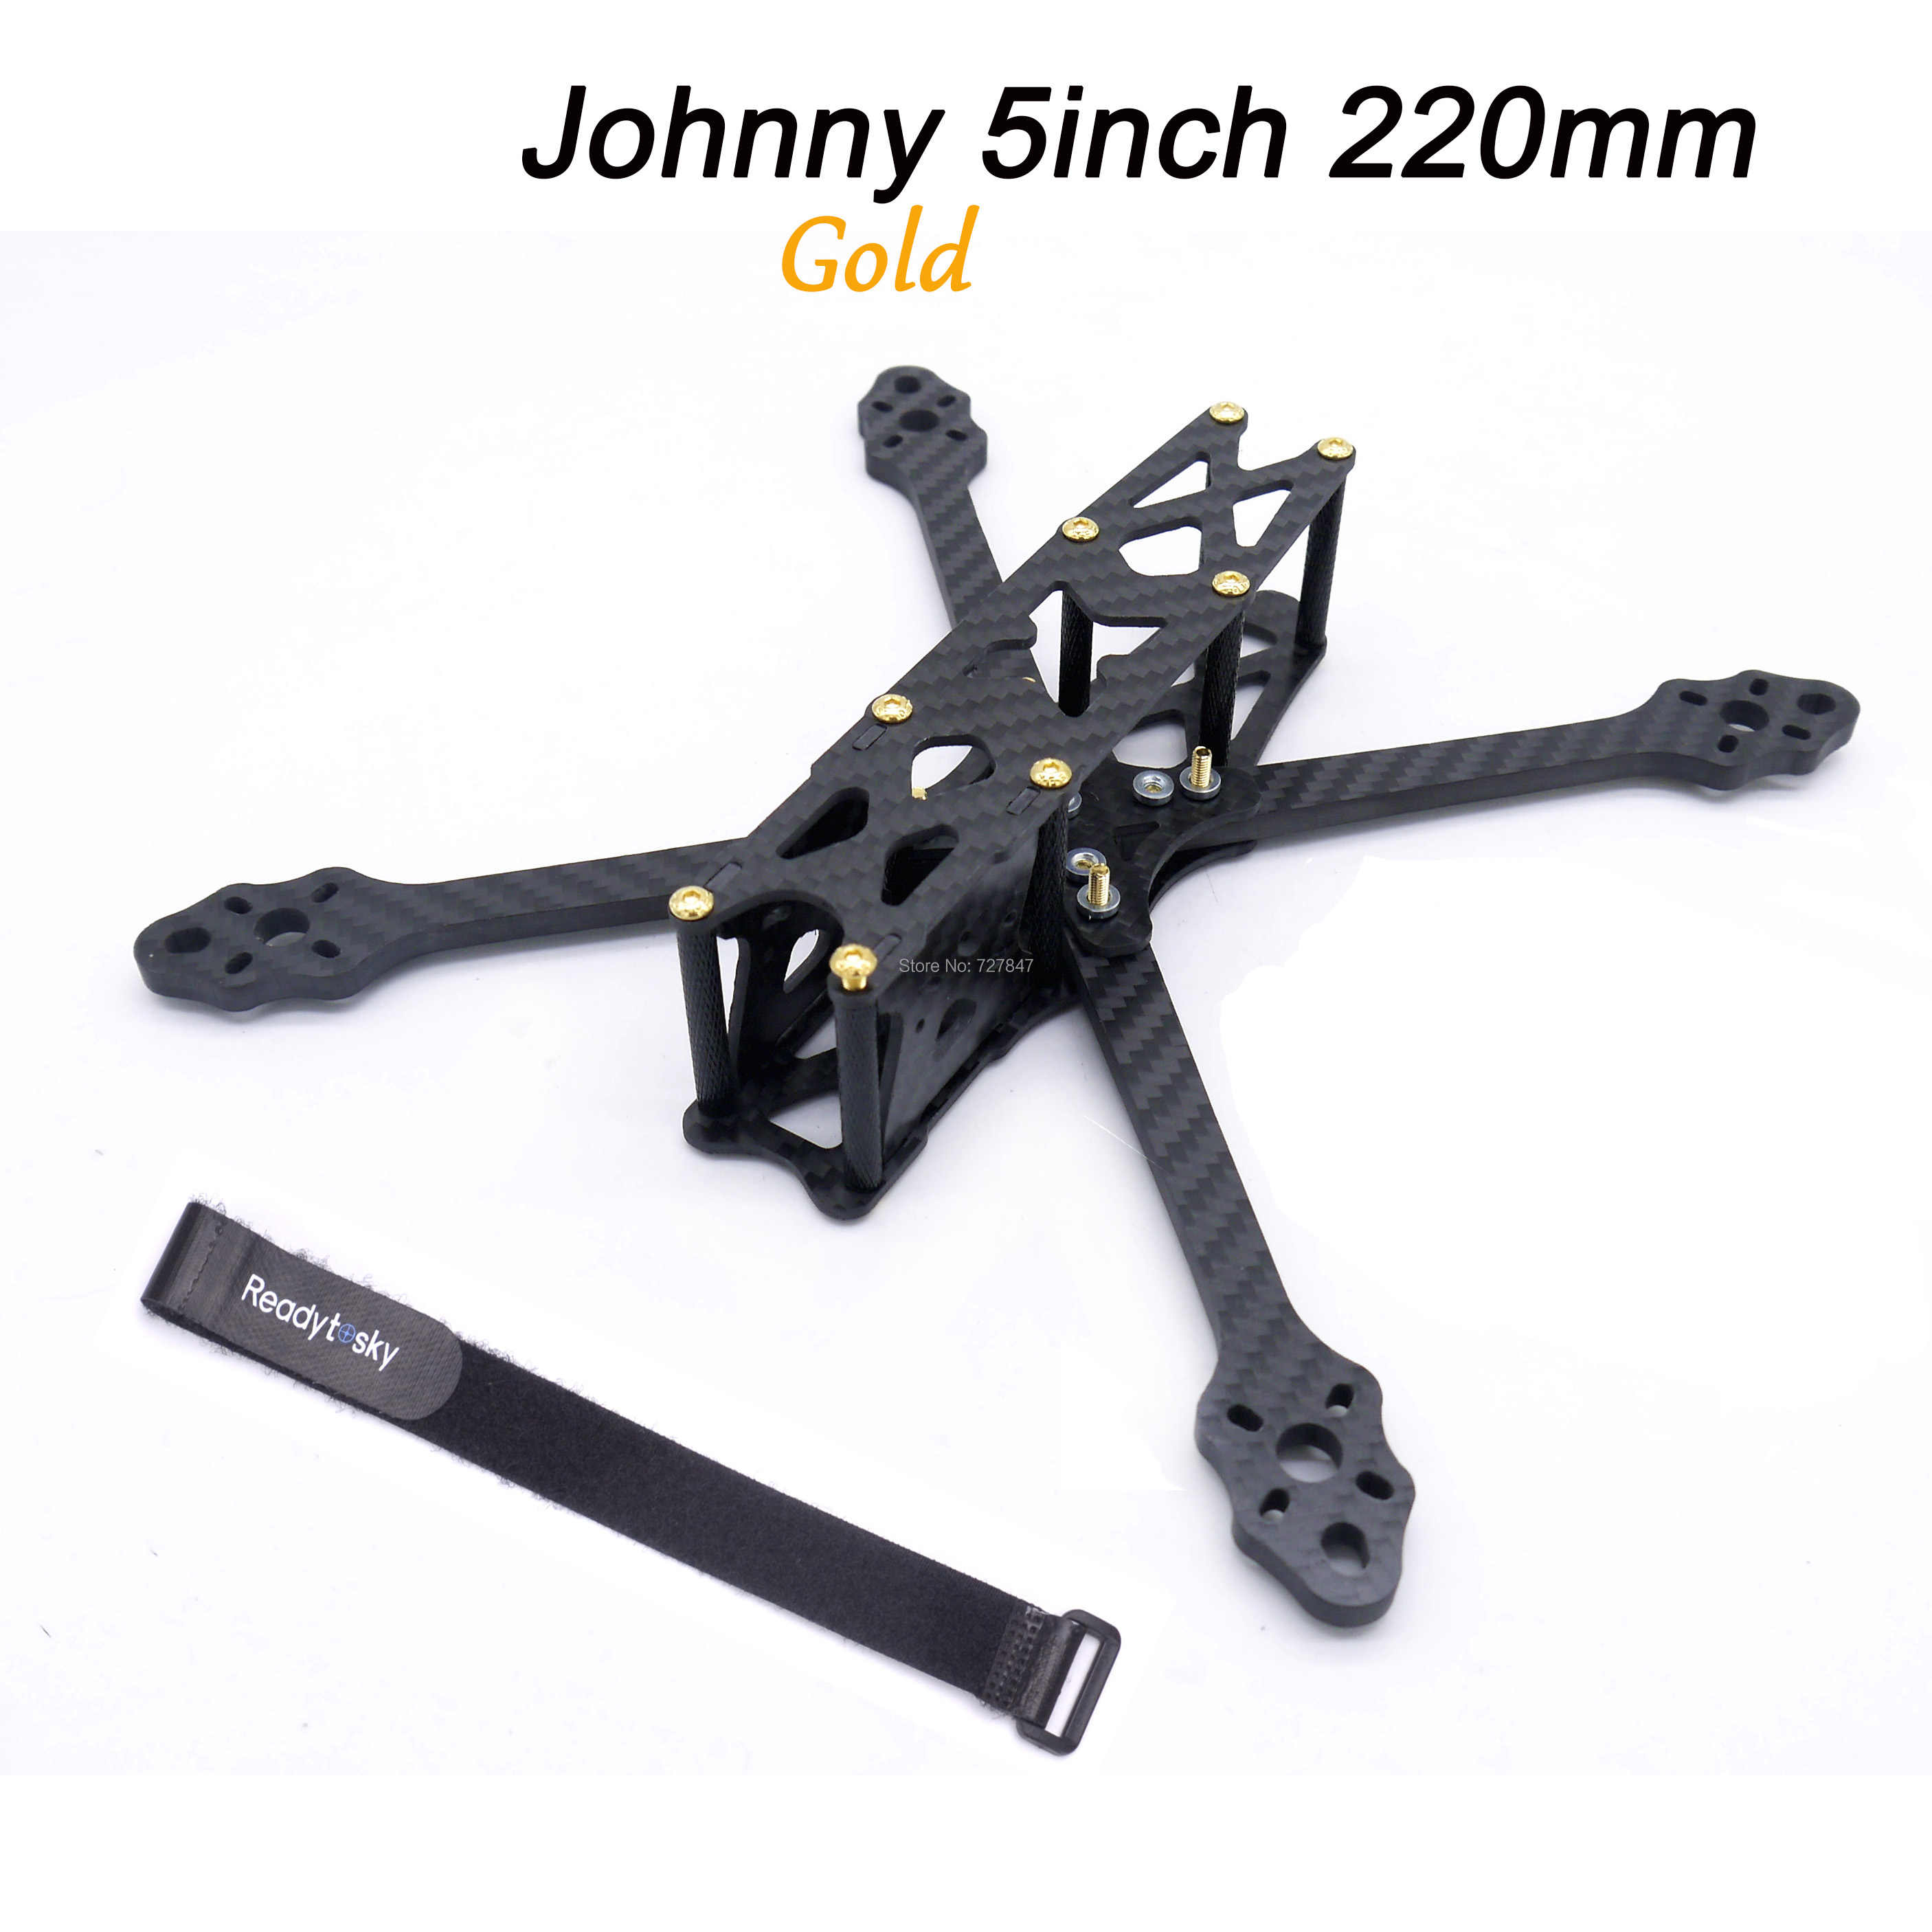 Johnny 5inch 220mm 5mm Arms with Gold Aluminum Screws true X frame kit For FPV Quadcopter Drone